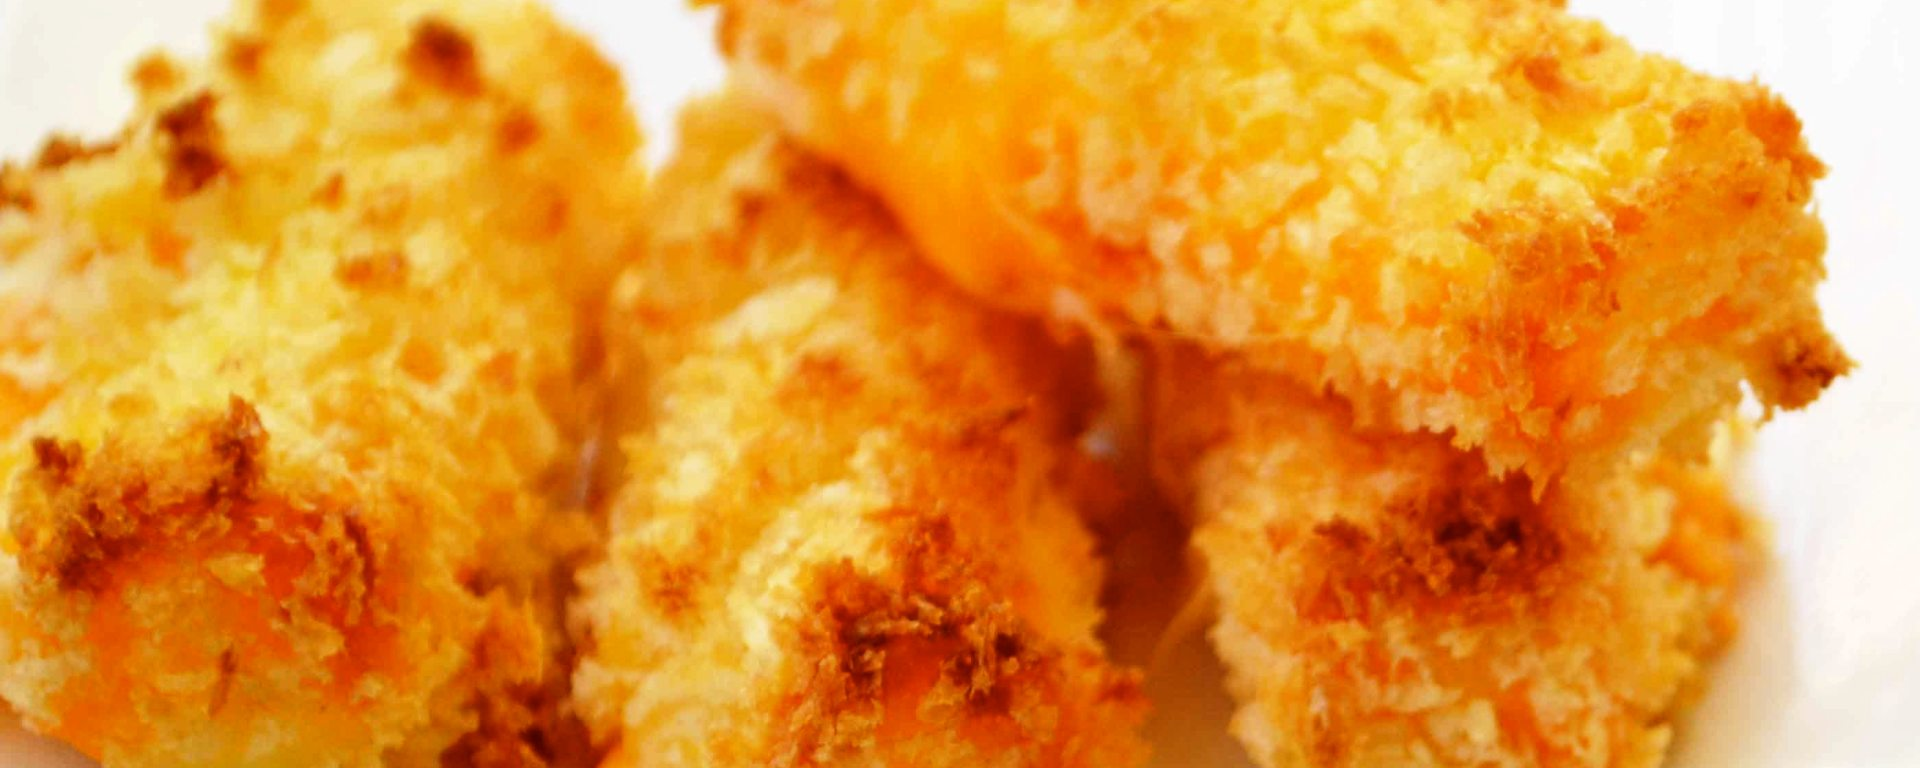 Lunch box snack of the week: cheese sticks